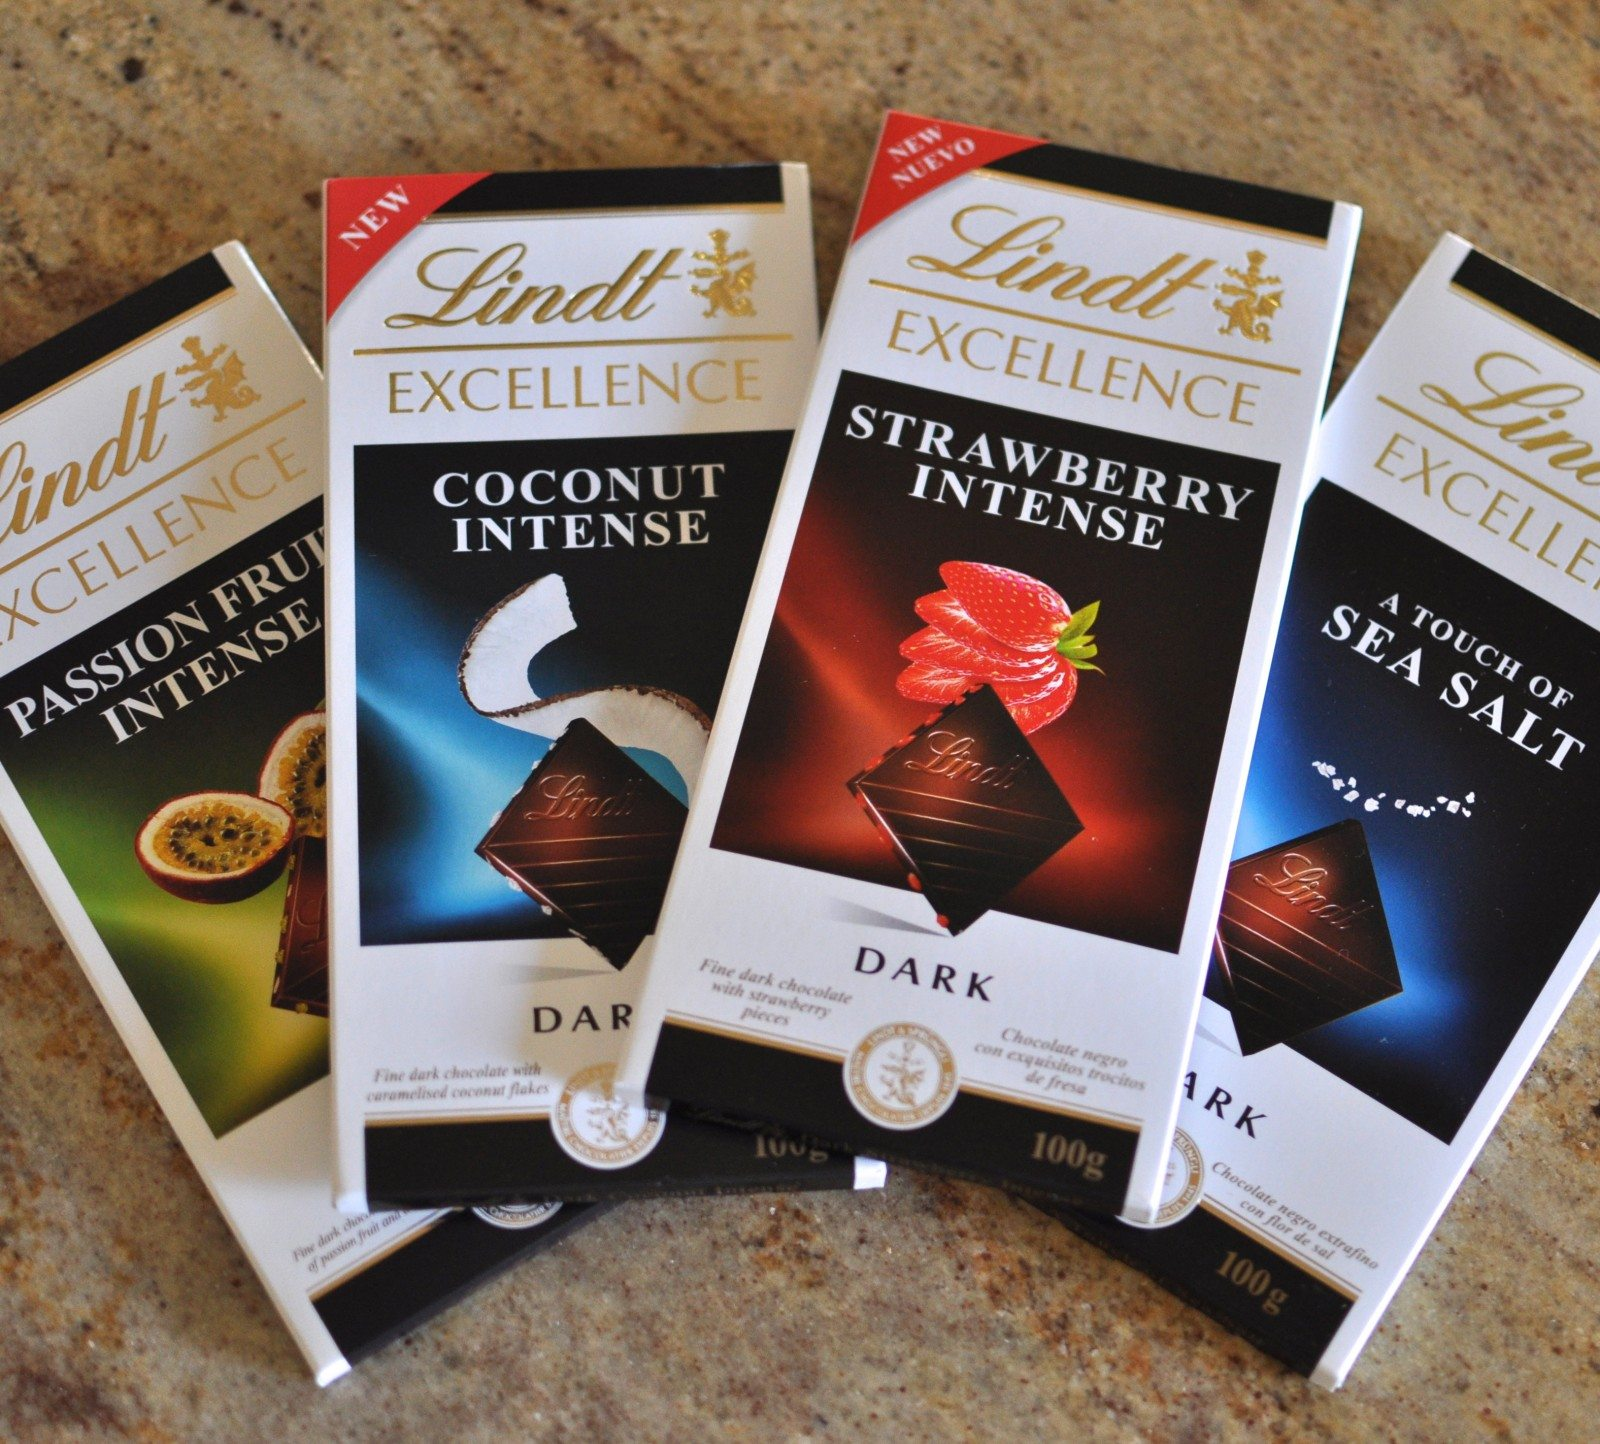 New Lindt chocolate selection